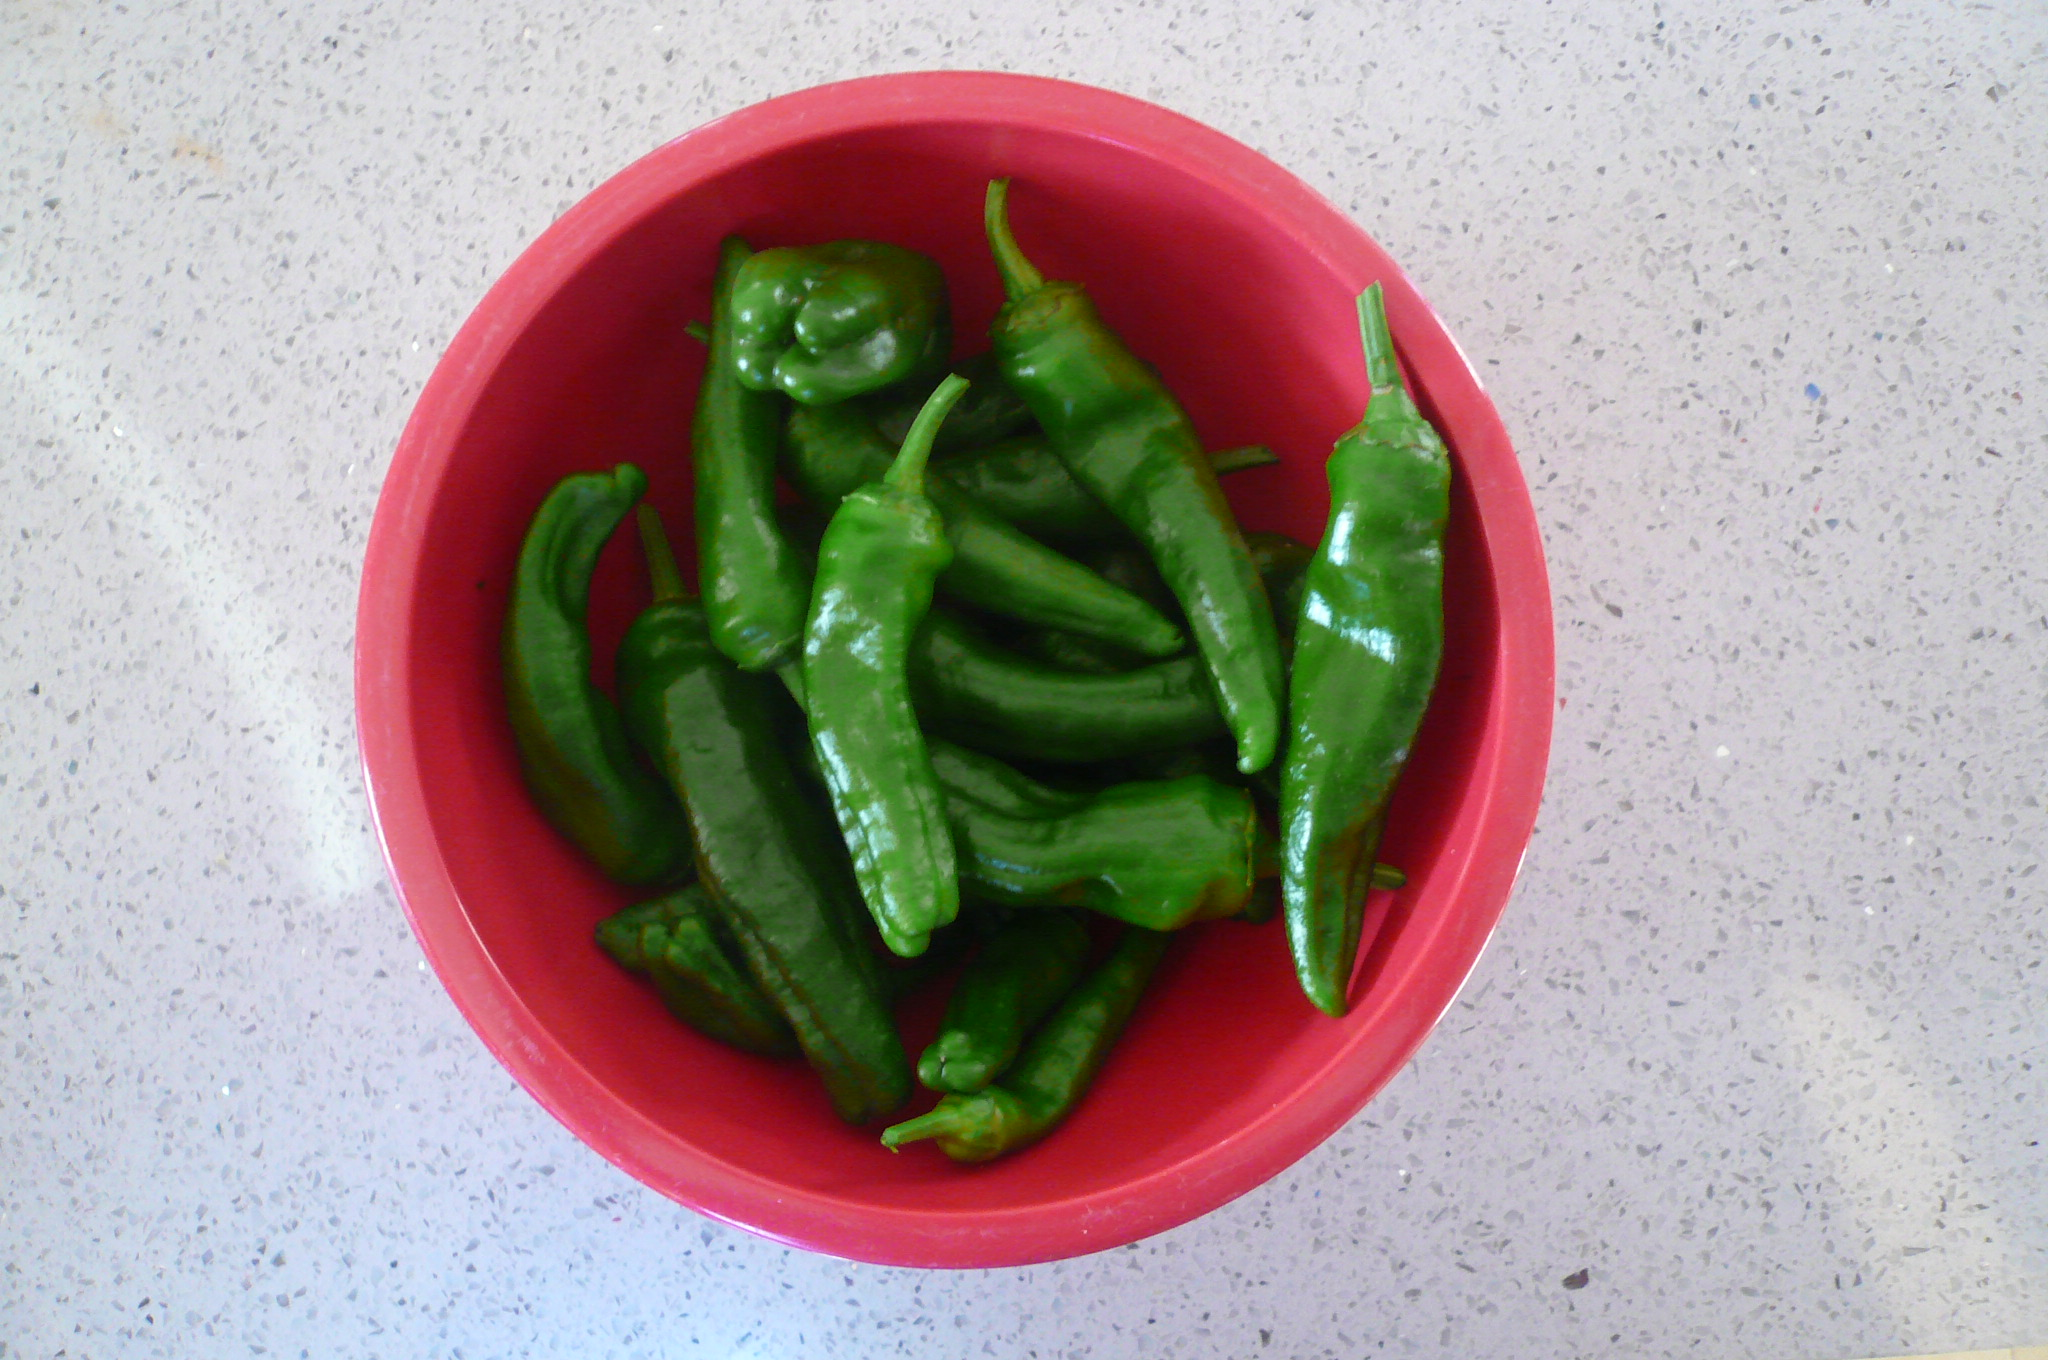 One of many Pimientos de Padrón crops